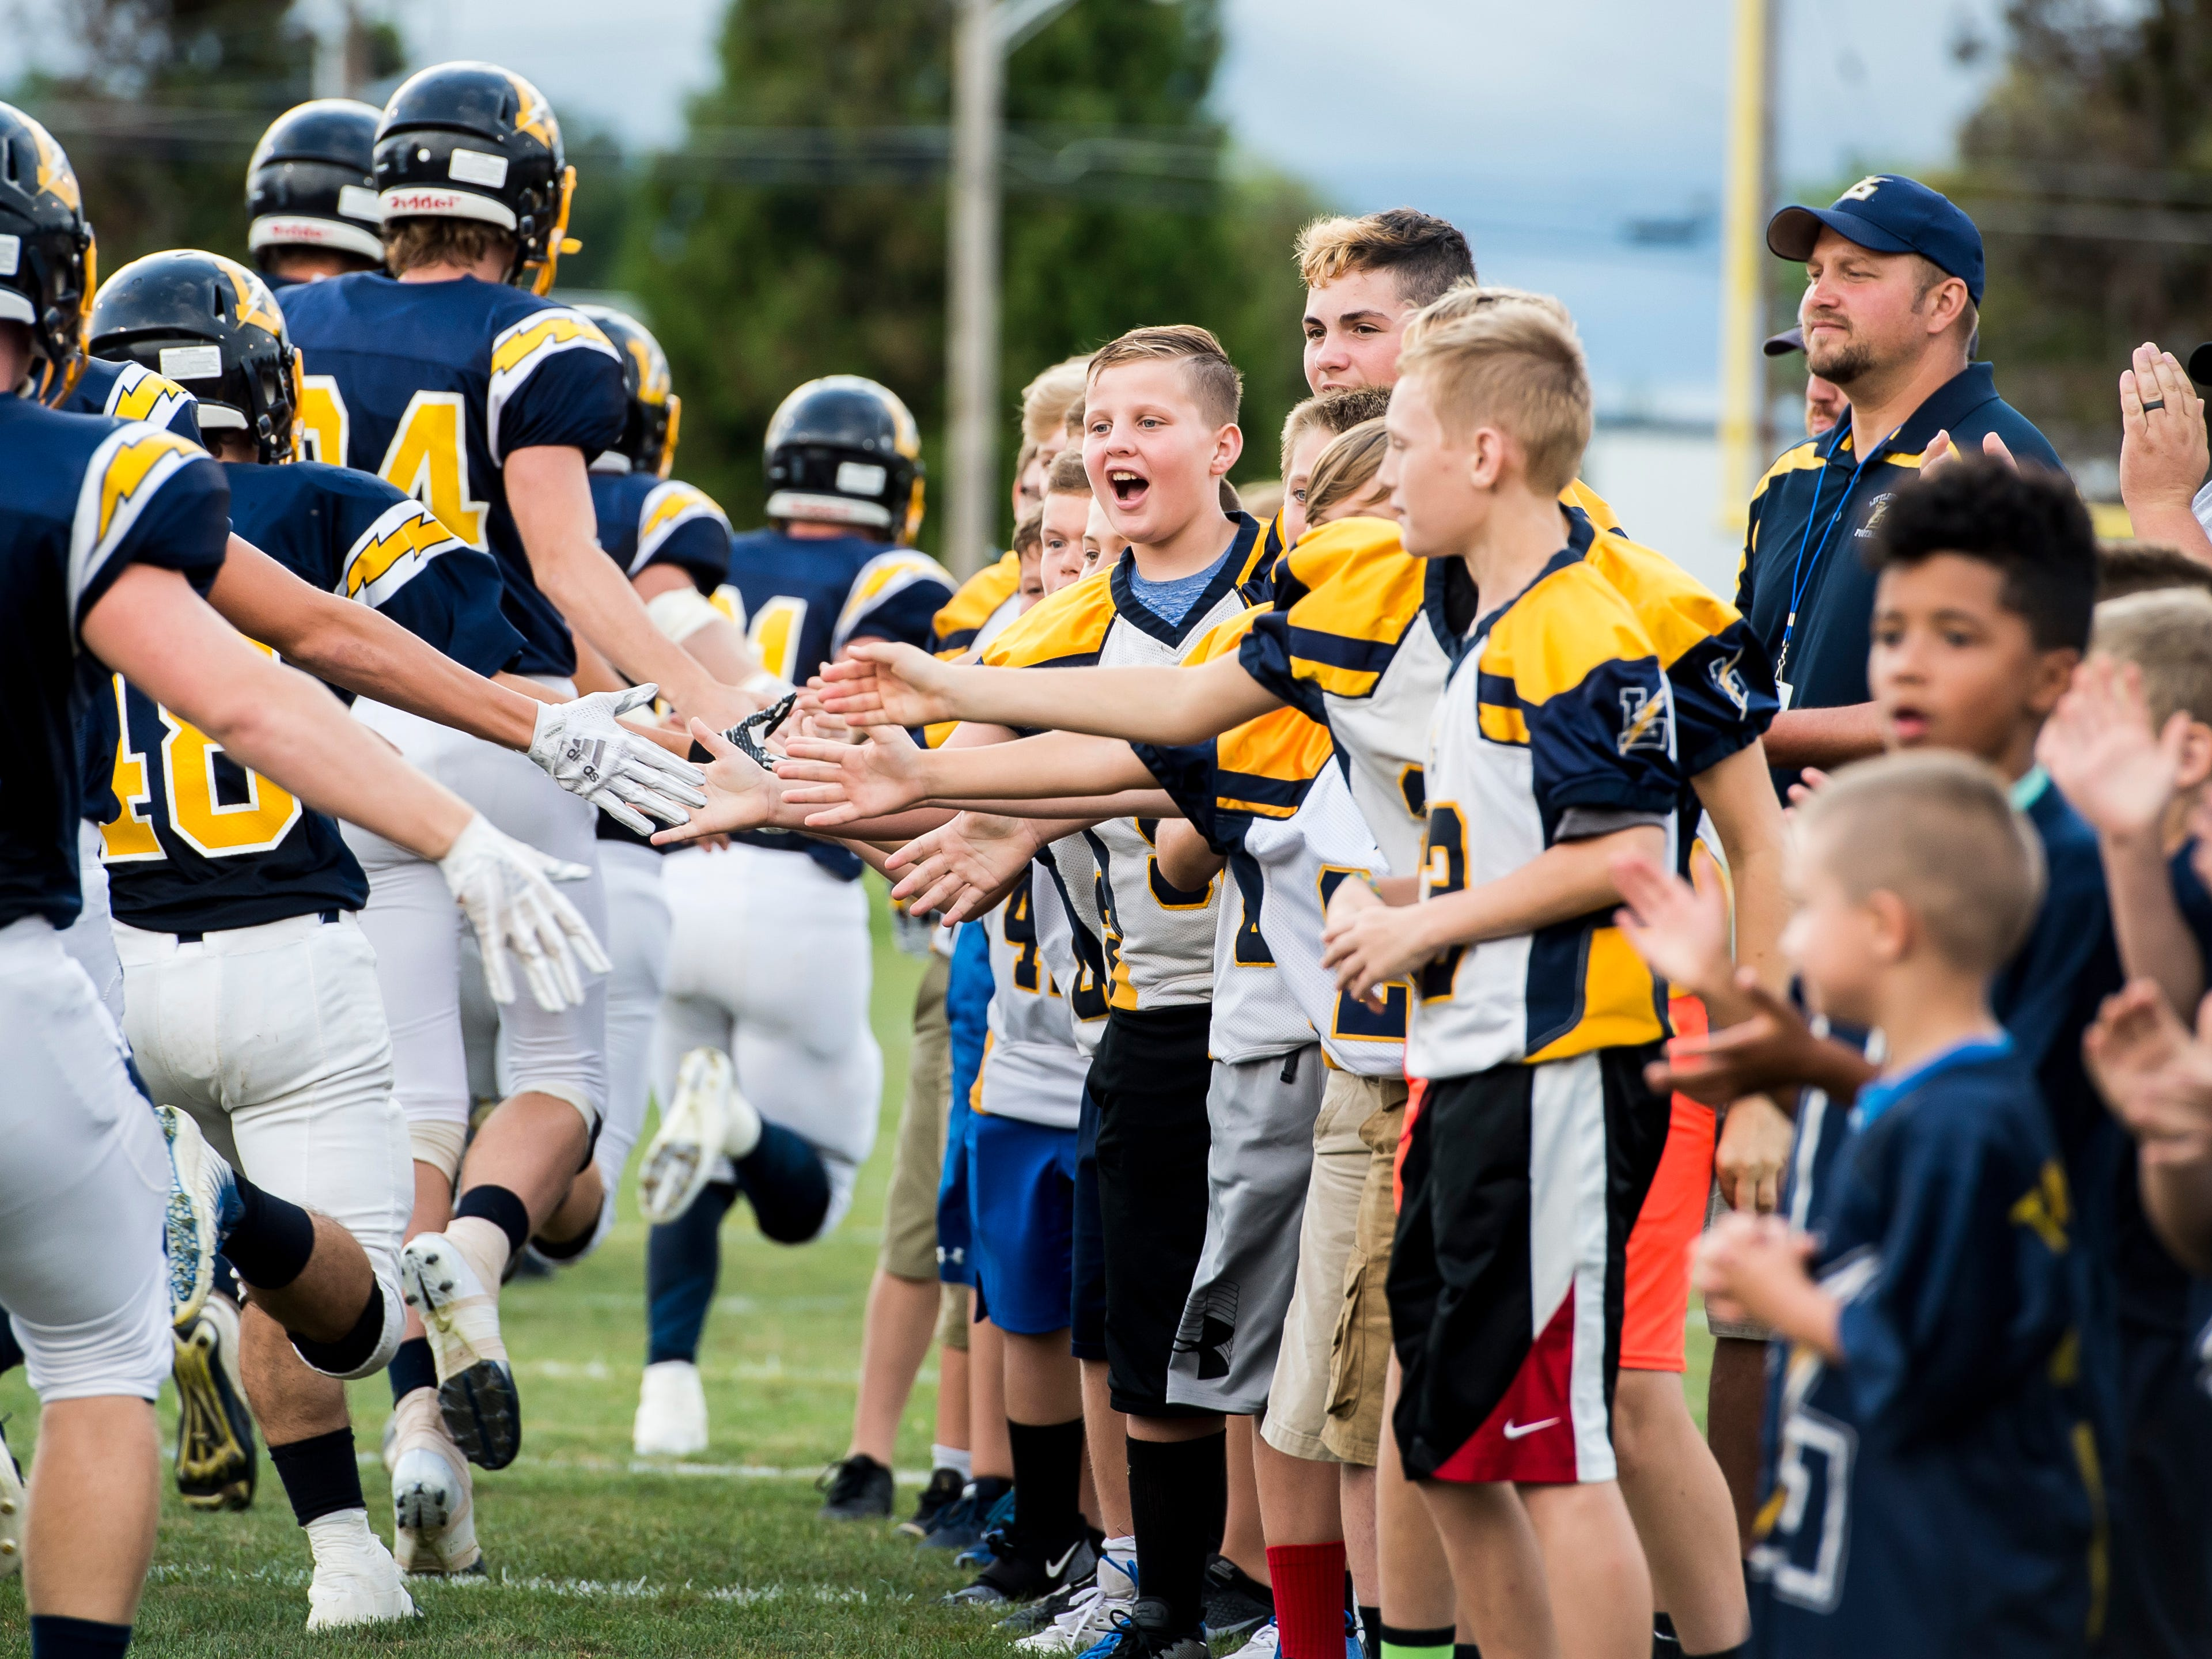 Littlestown fans high-five players as they run onto the field Friday, August 31, 2018. The Bolts beat the Warriors 29-14.